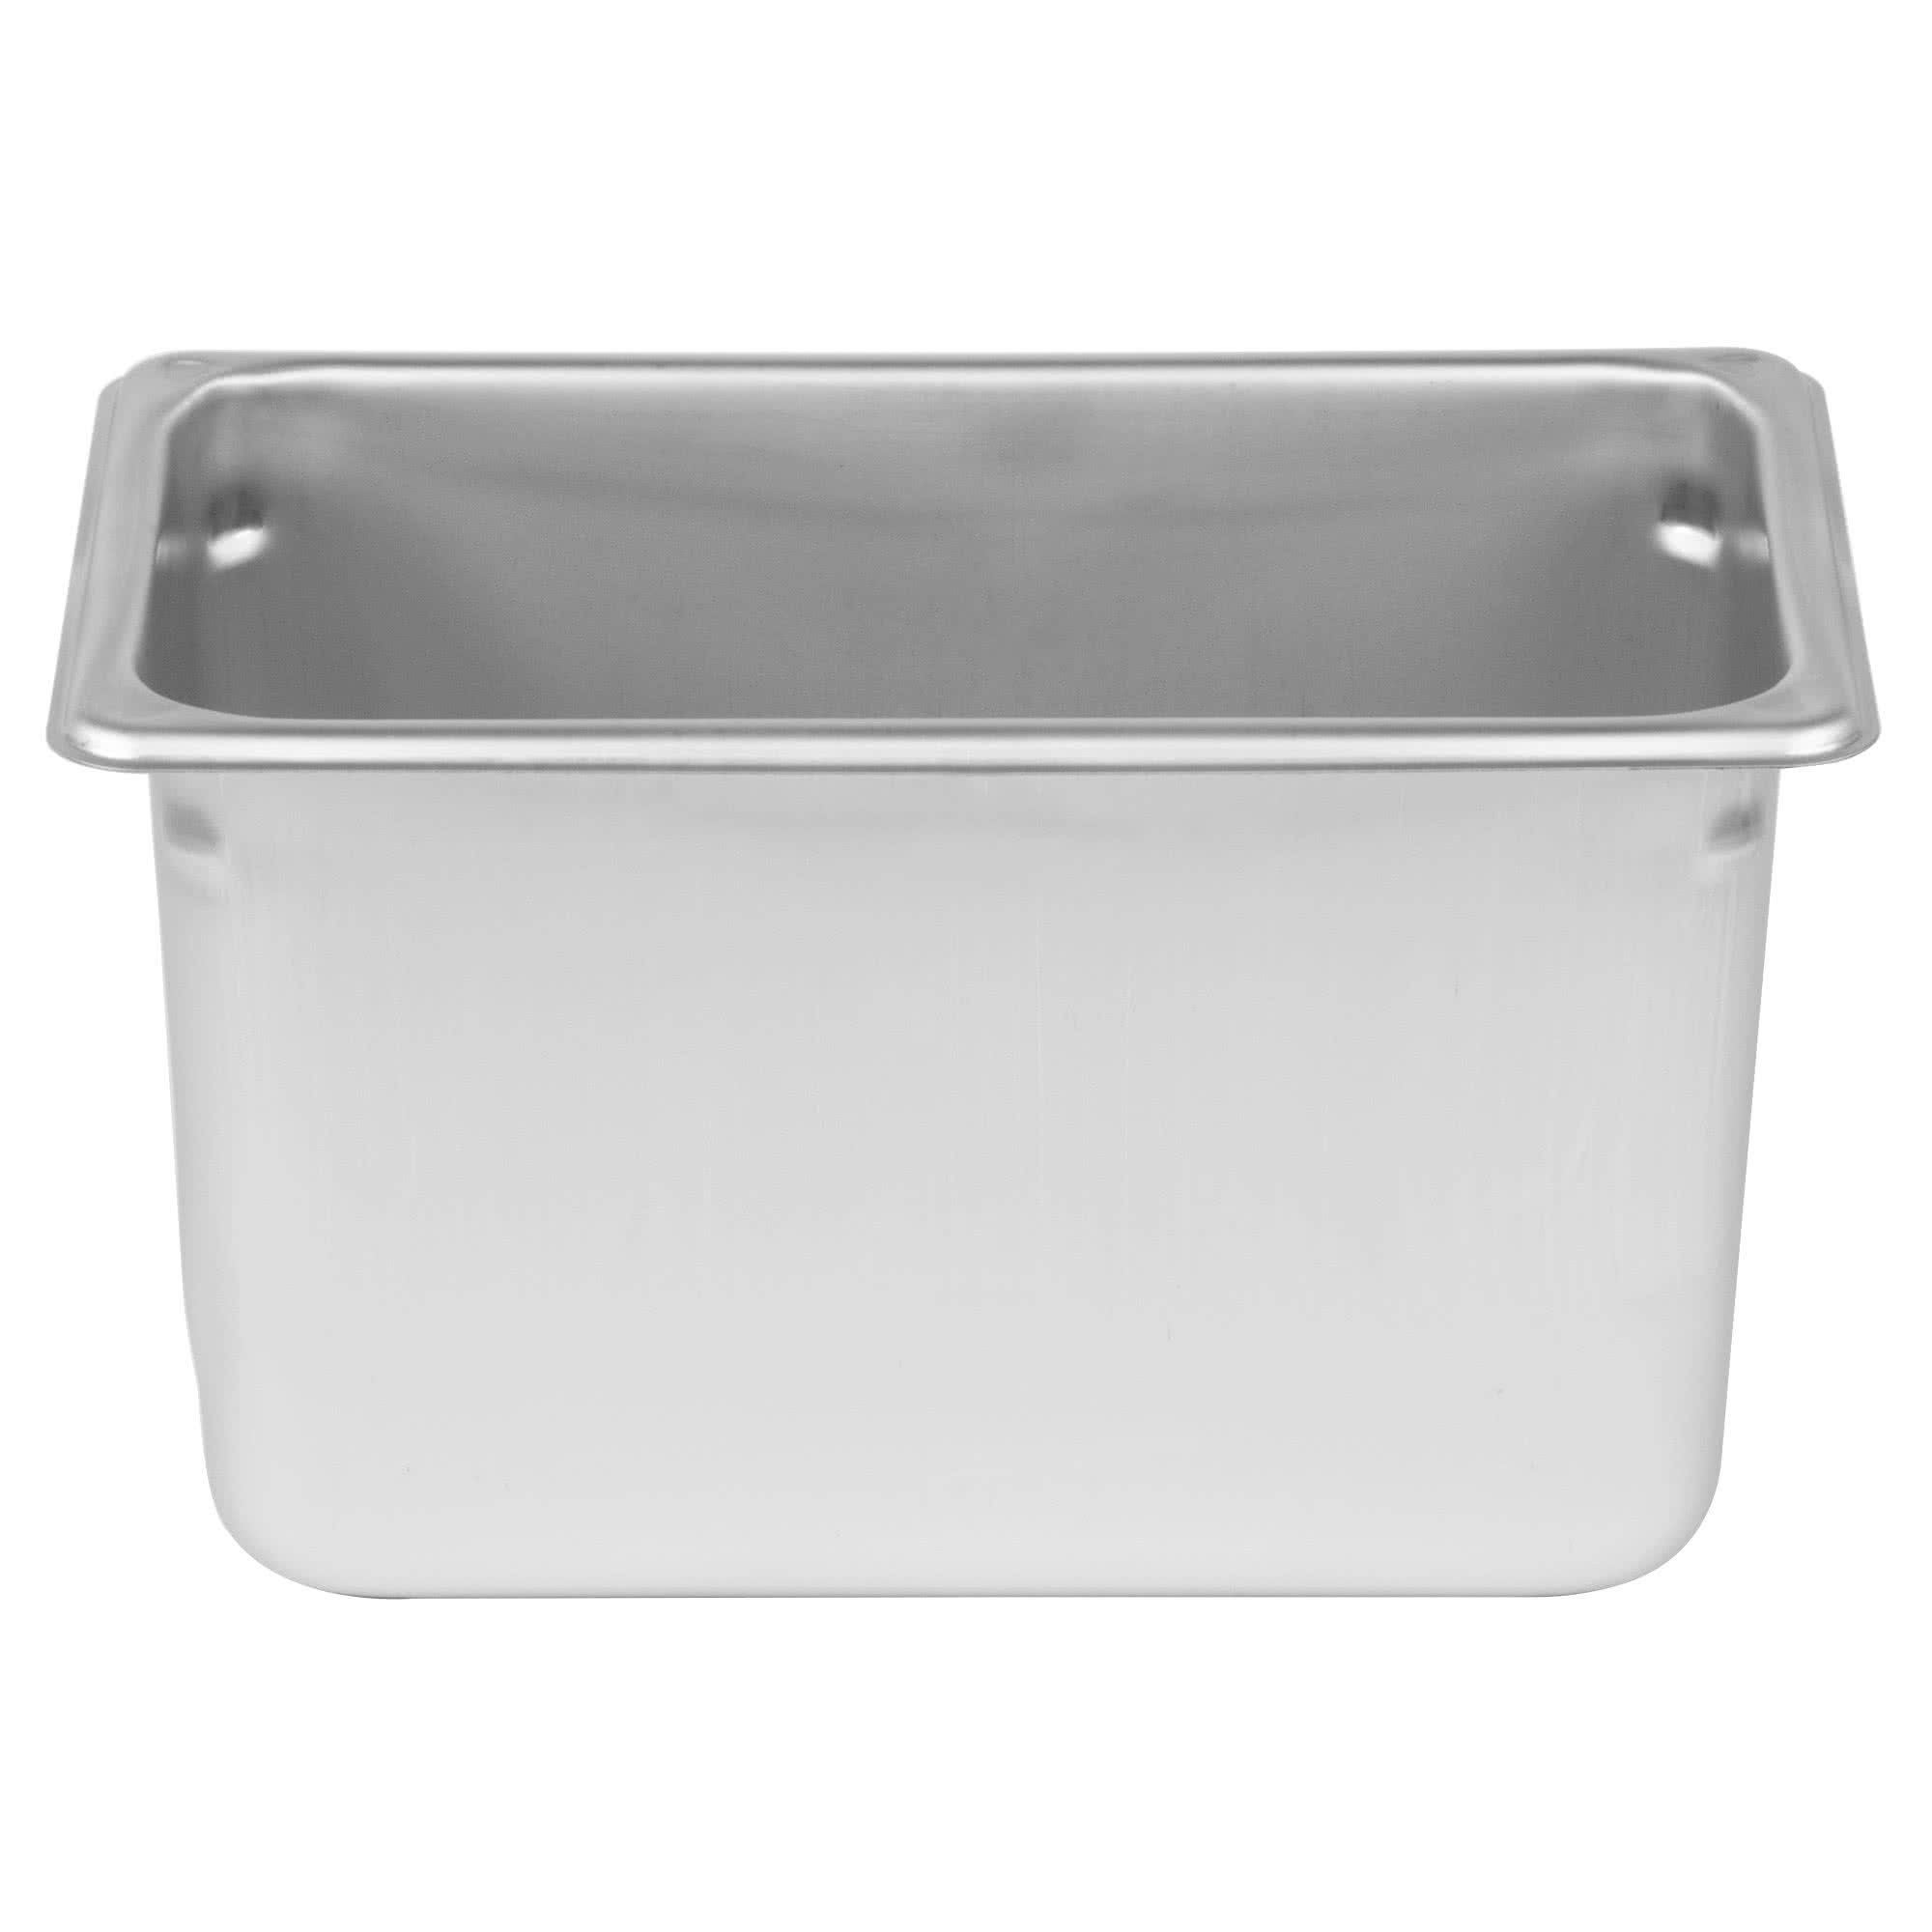 TableTop King 1/4 Size Anti-Jam Stainless Steel Steam Table / Hotel Pan - 6'' Deep